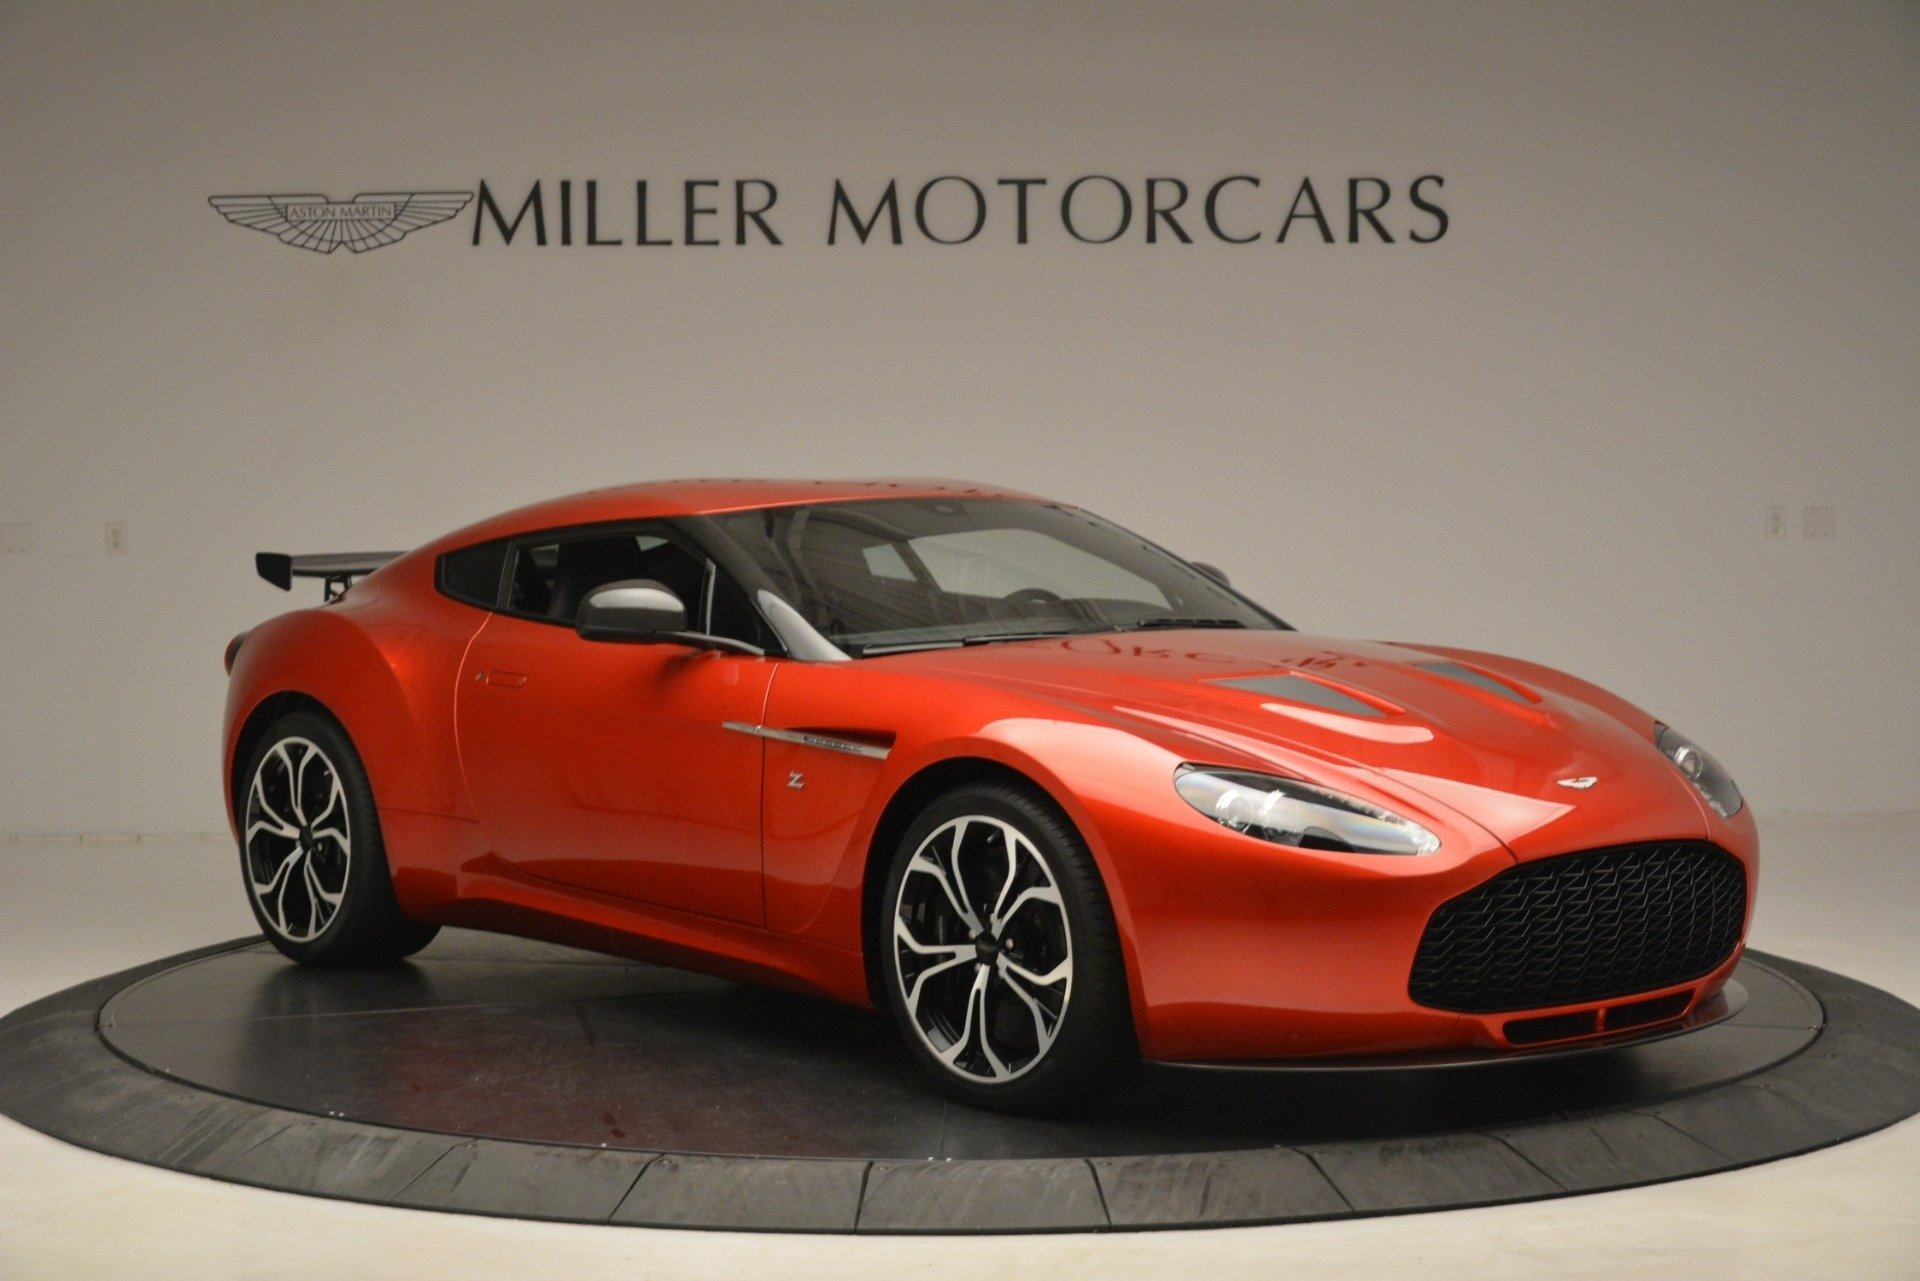 Used 2013 Aston Martin V12 Zagato Coupe For Sale In Greenwich, CT 3181_p10